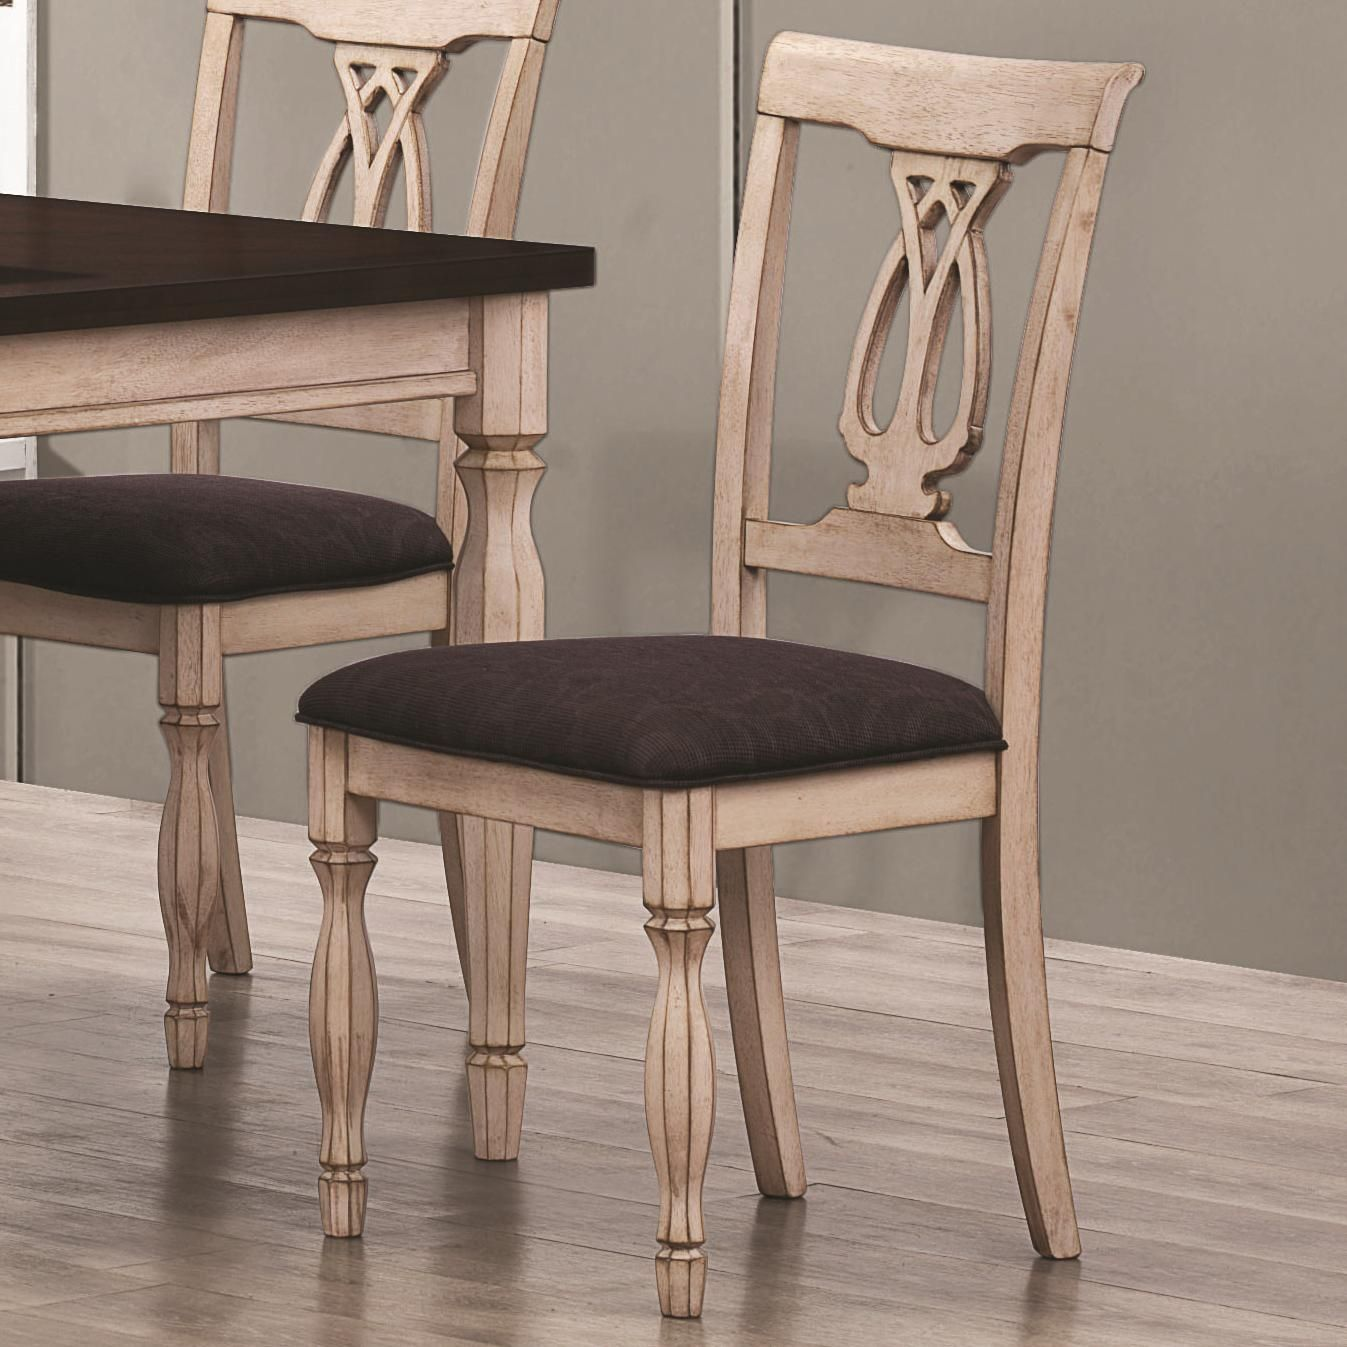 White Wood Chair Coaster Camille 103582 White Wood Dining Chair In Los